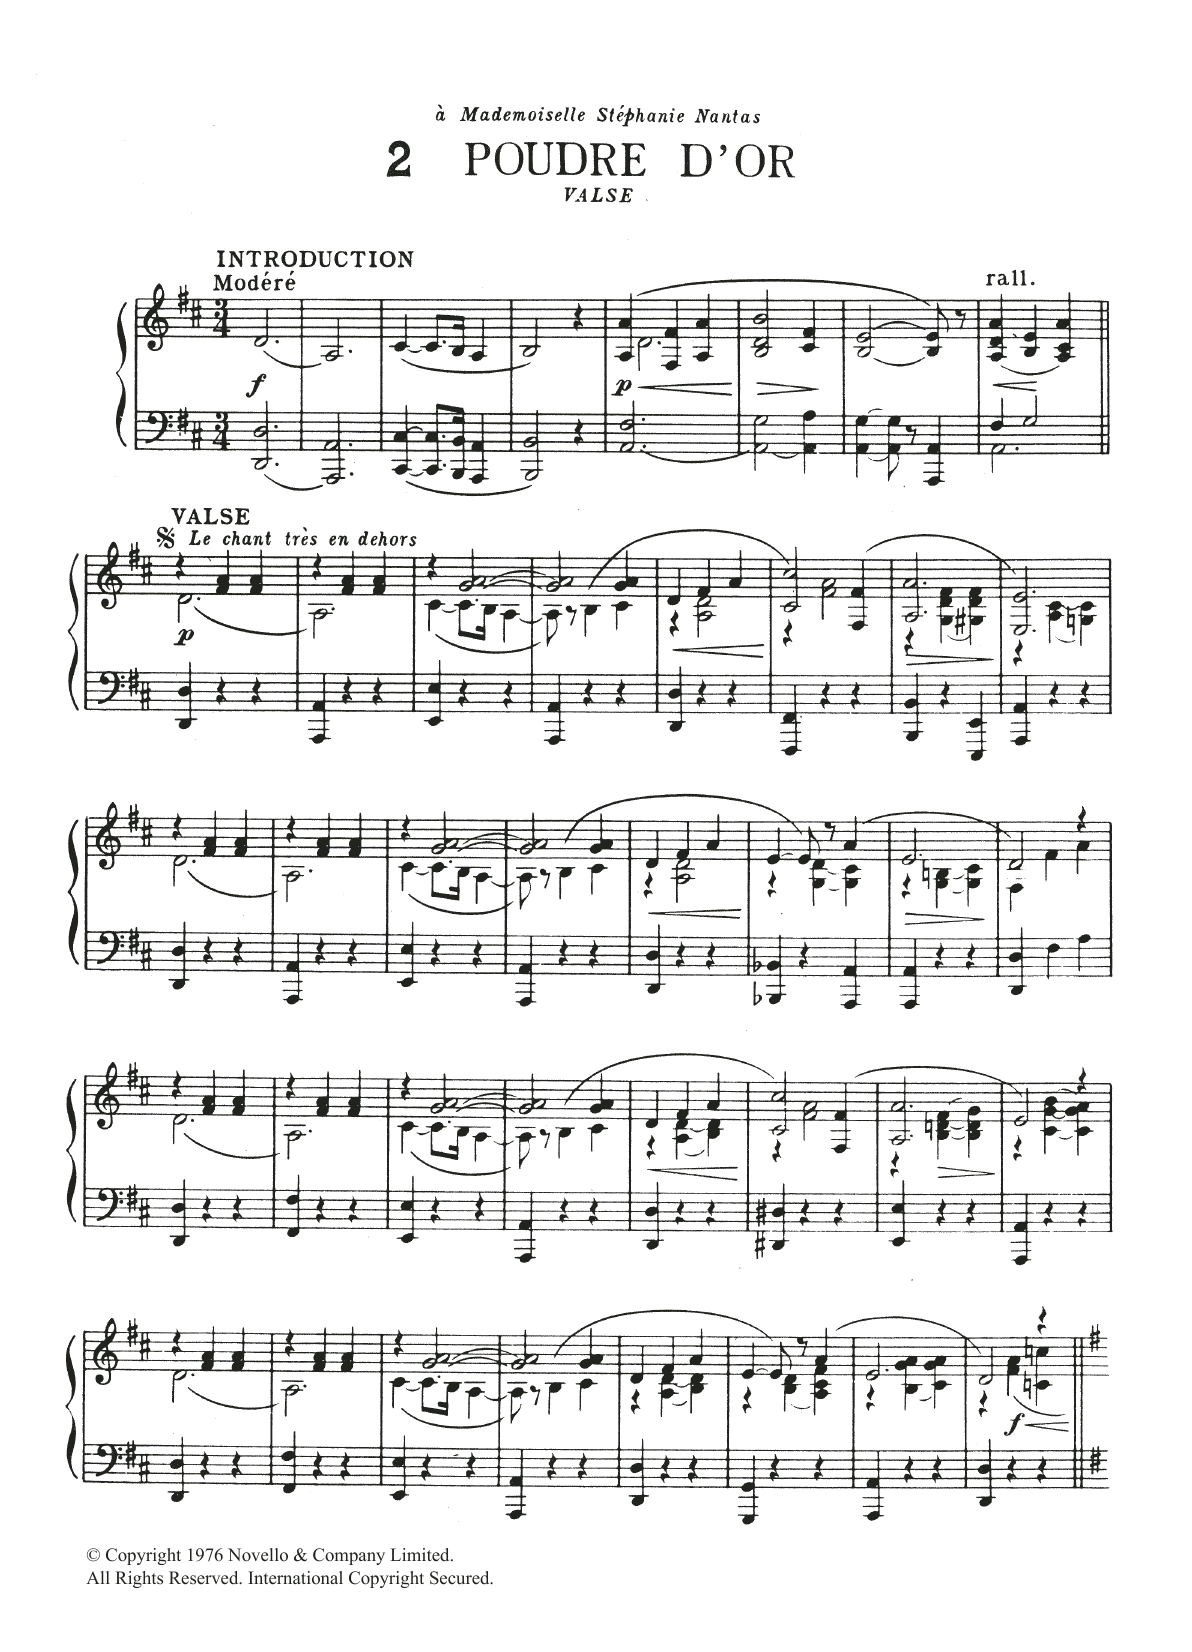 Poudre d'Or Sheet Music